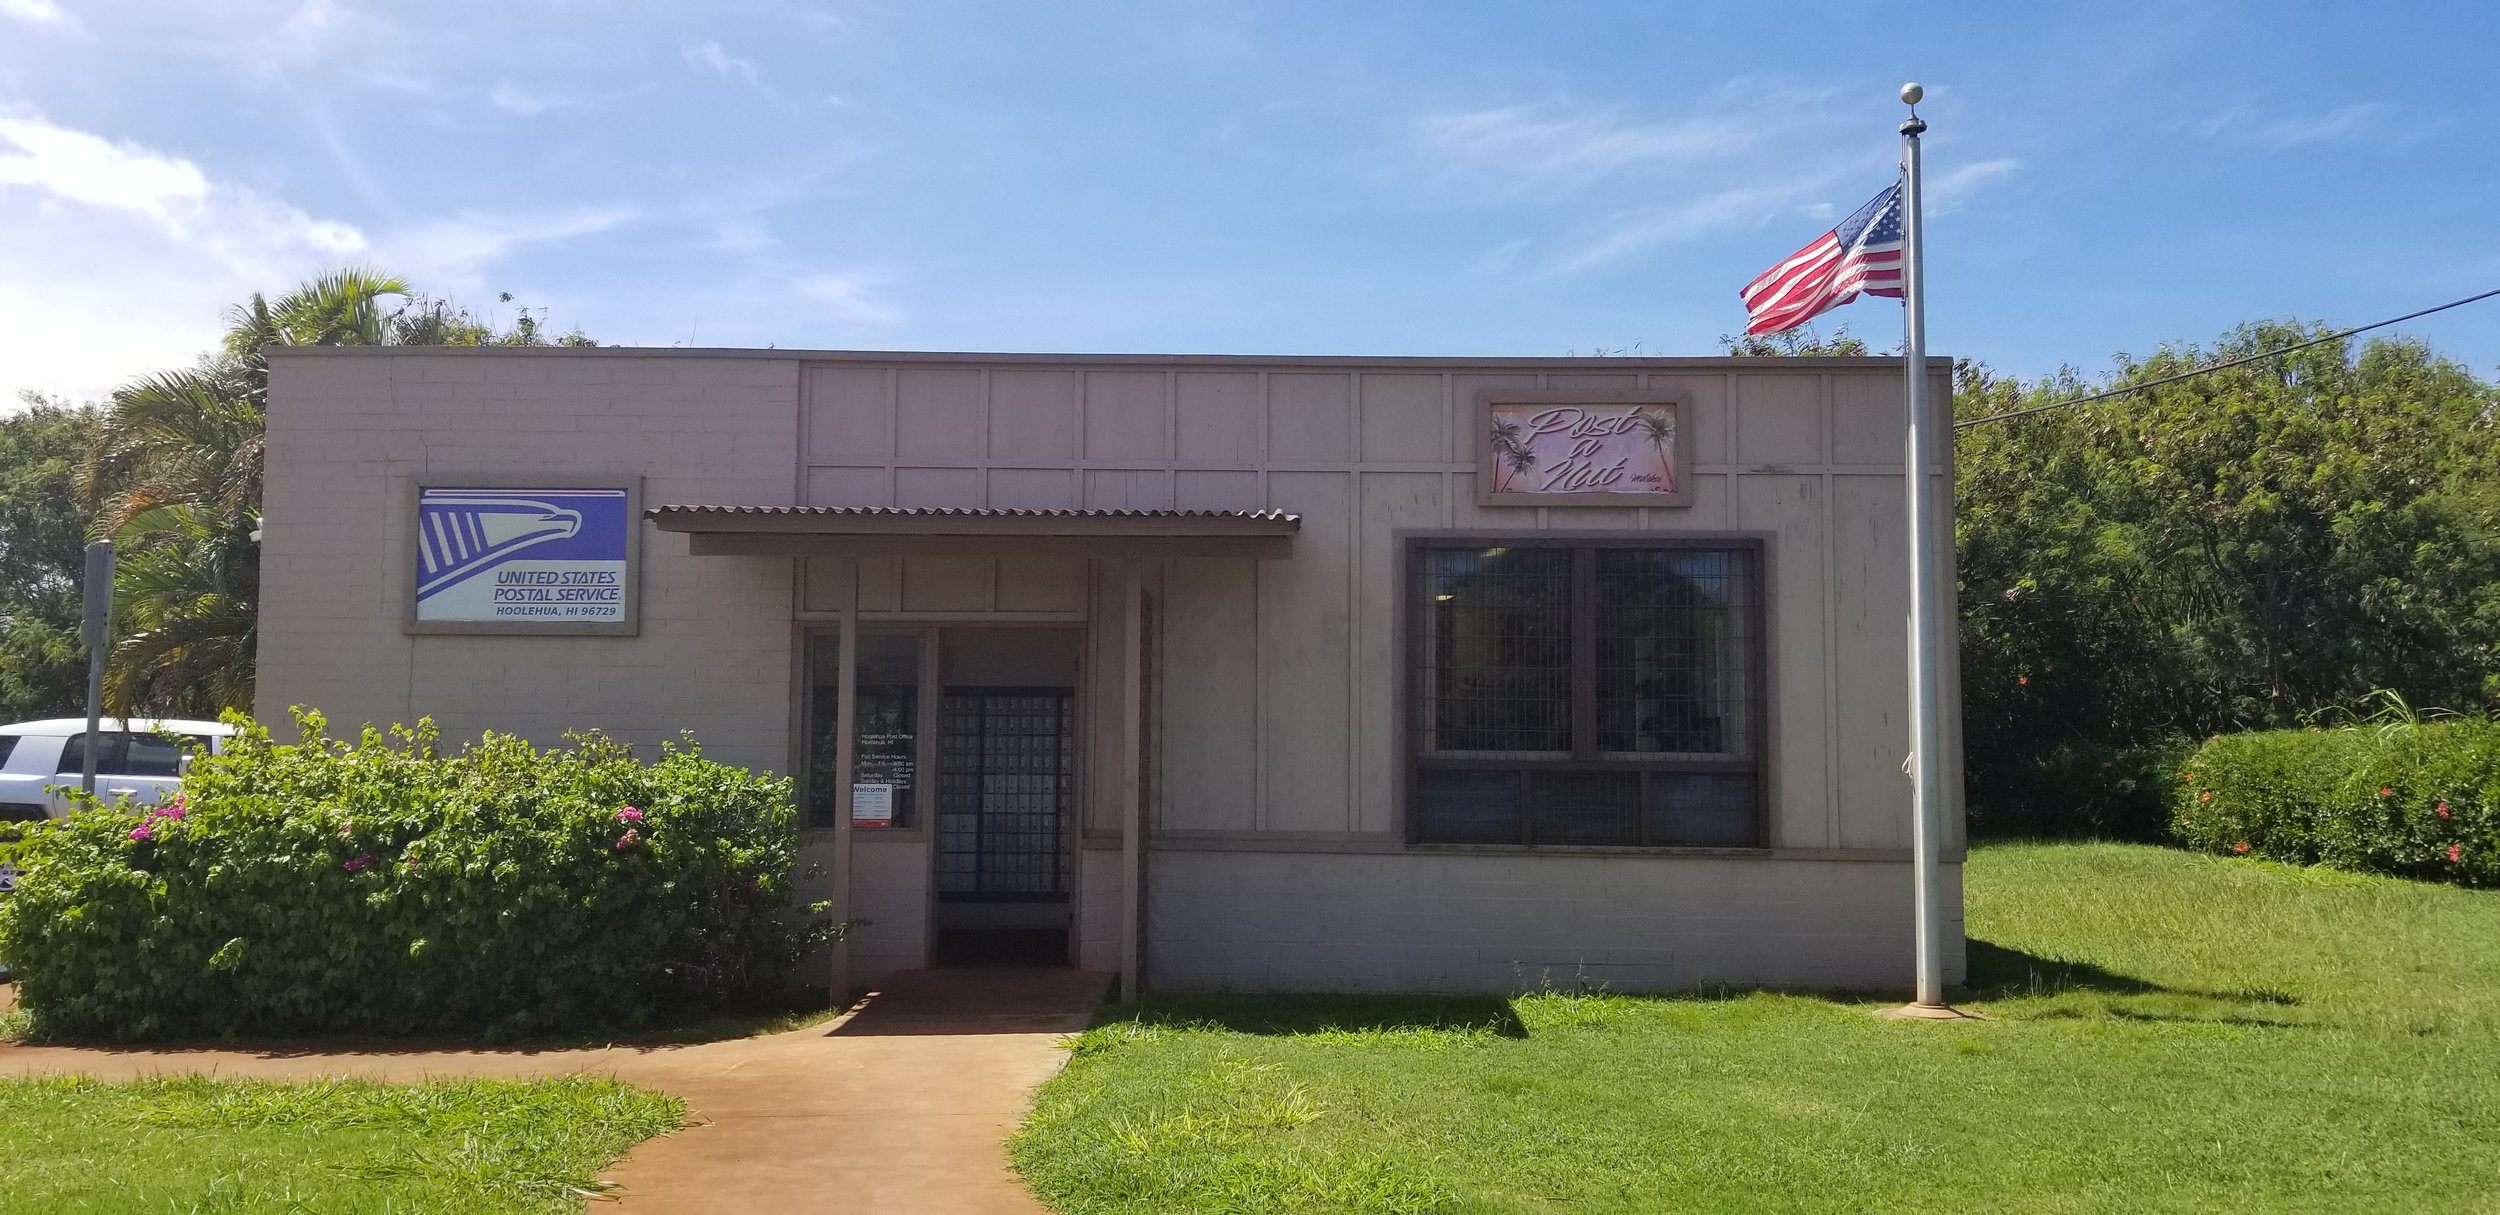 Hoolehua Post Office, Molokai - the only post office where you can mail your coconuts home.